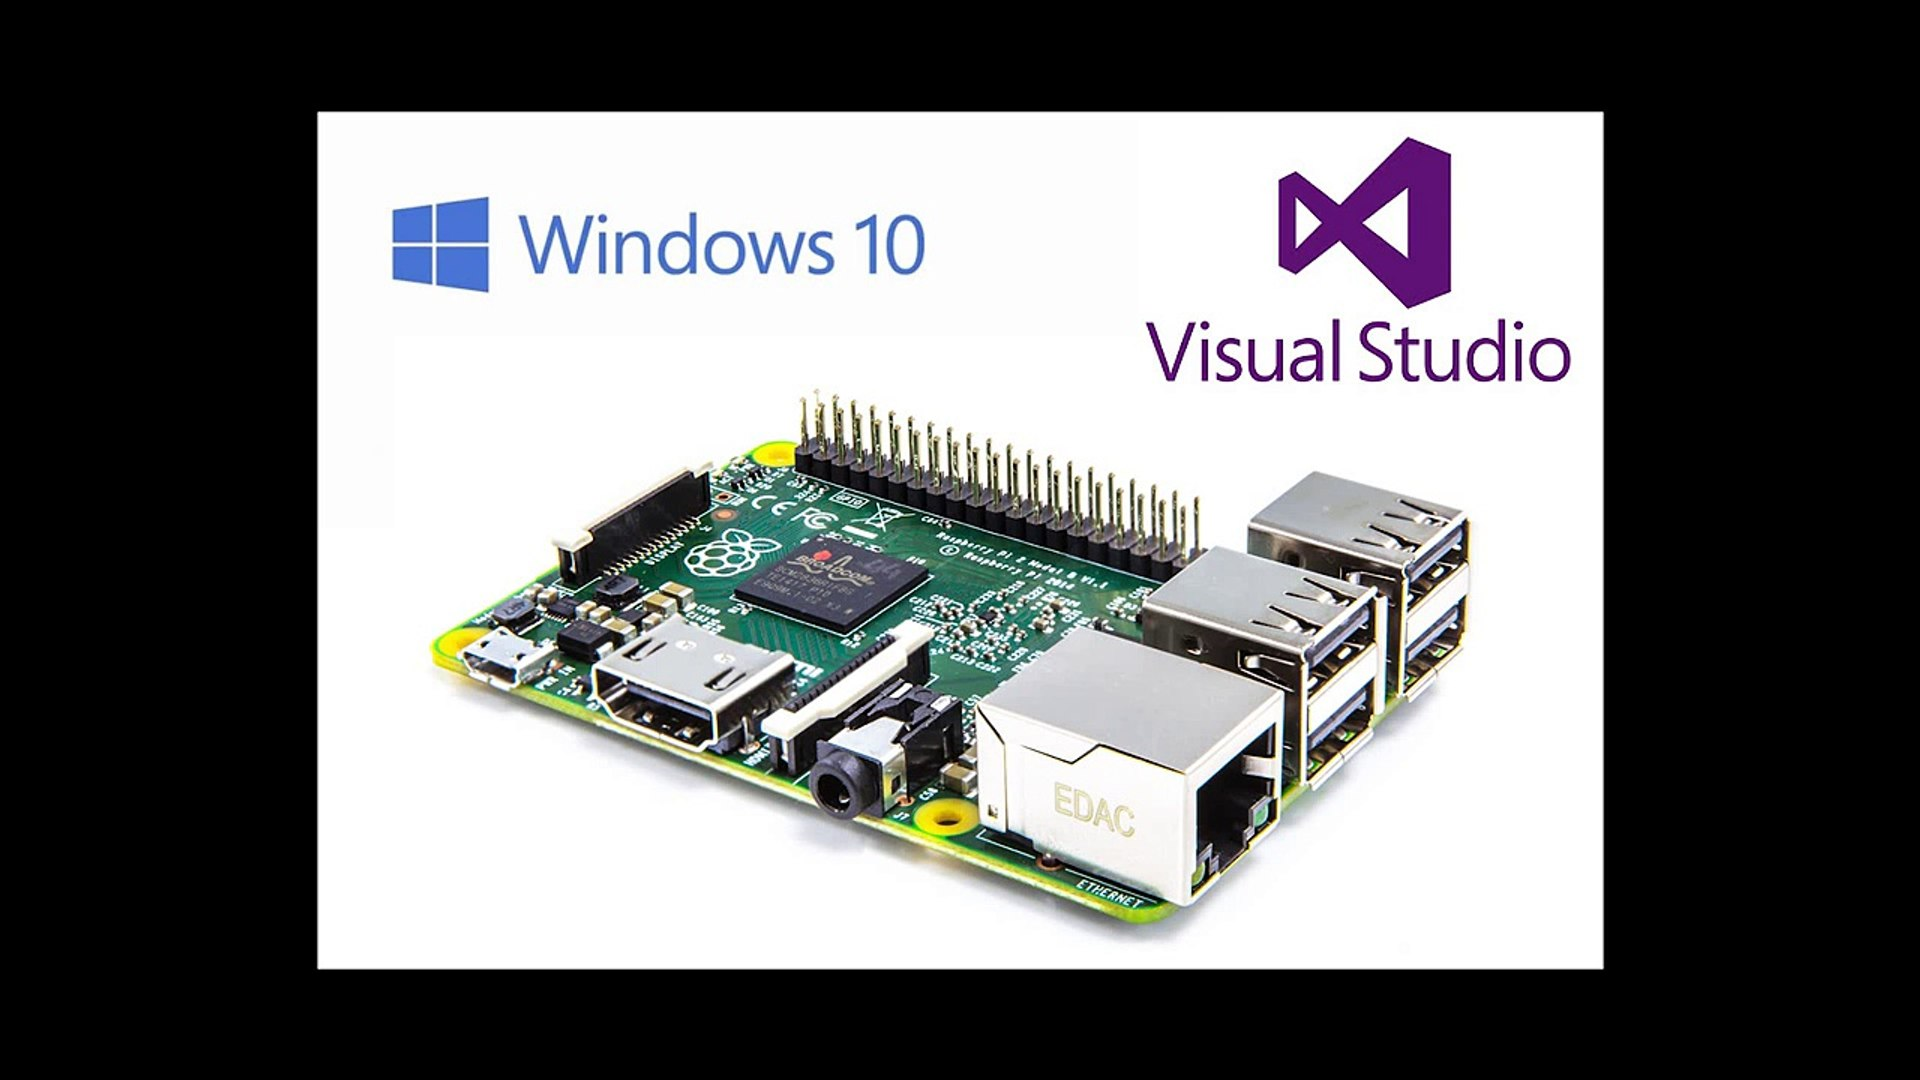 Use GPIO Controller with VB NET - Raspberry Pi 2 IoT Windows 10 - Blink  Example